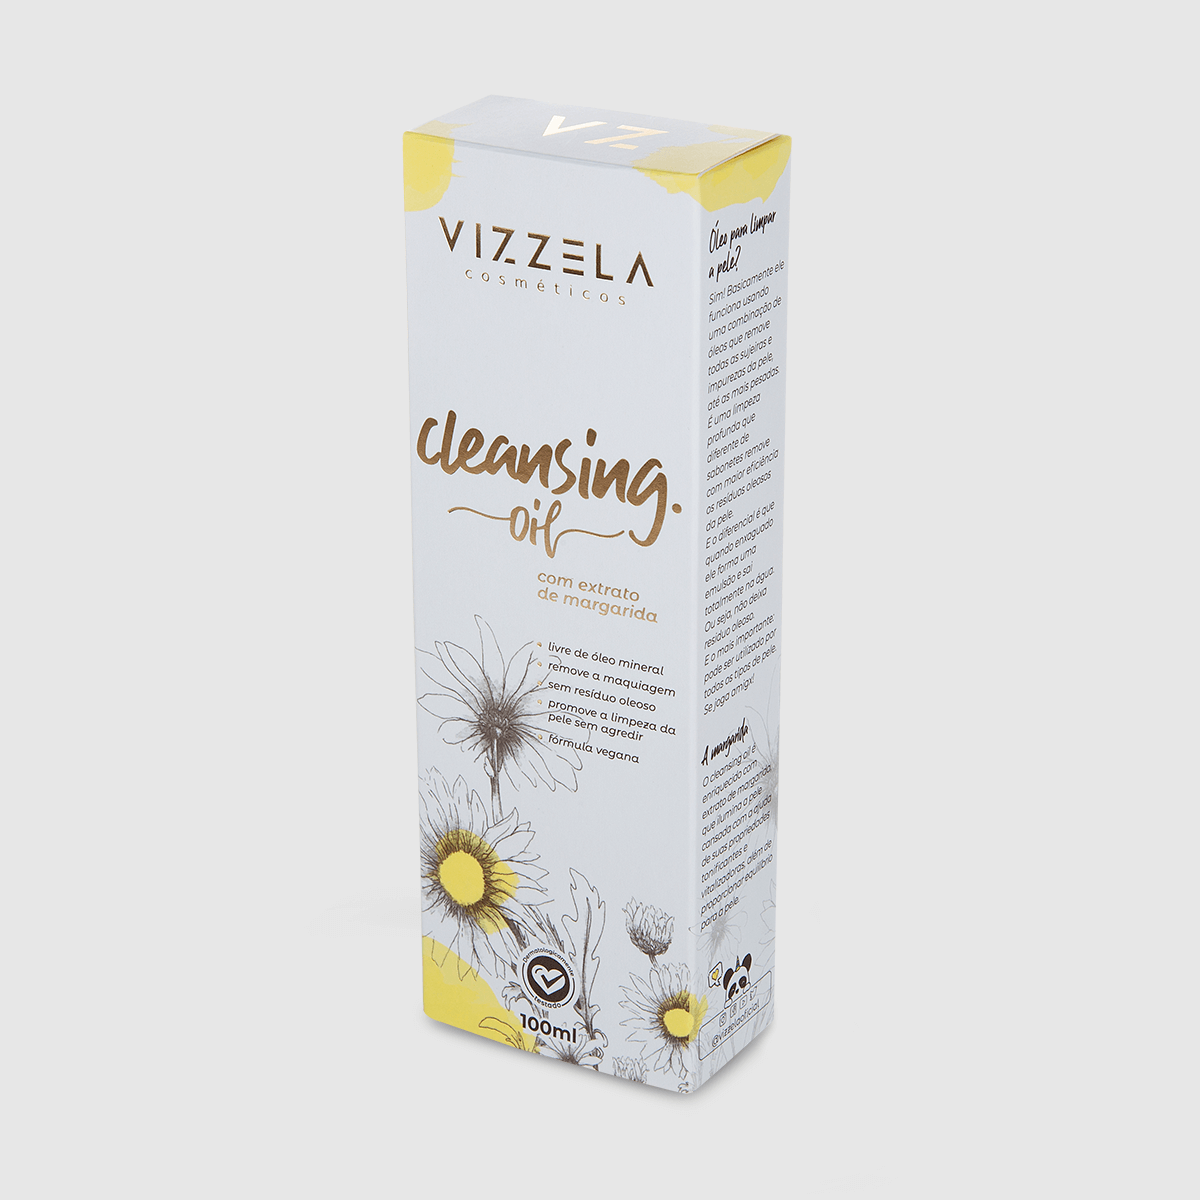 Cleansing Oil - Vizzela 100ml